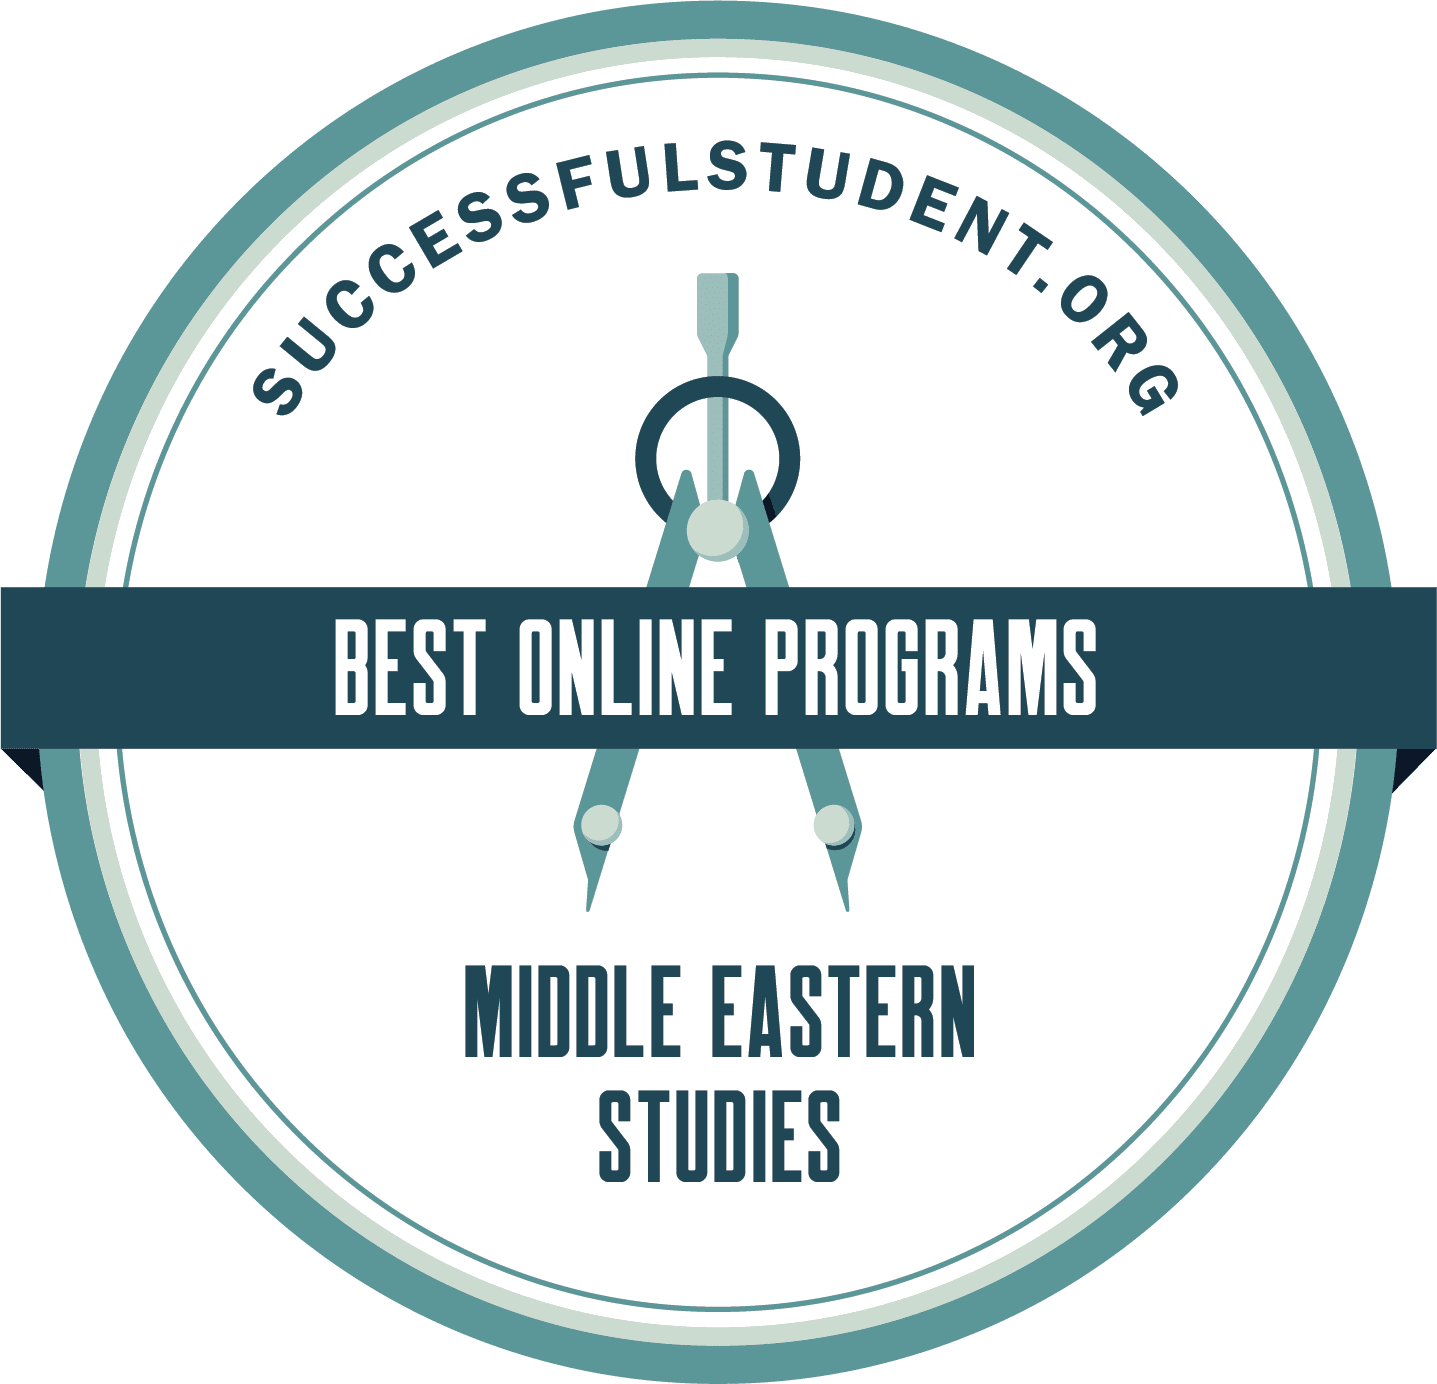 Best Online Middle Eastern Studies Programs's Badge